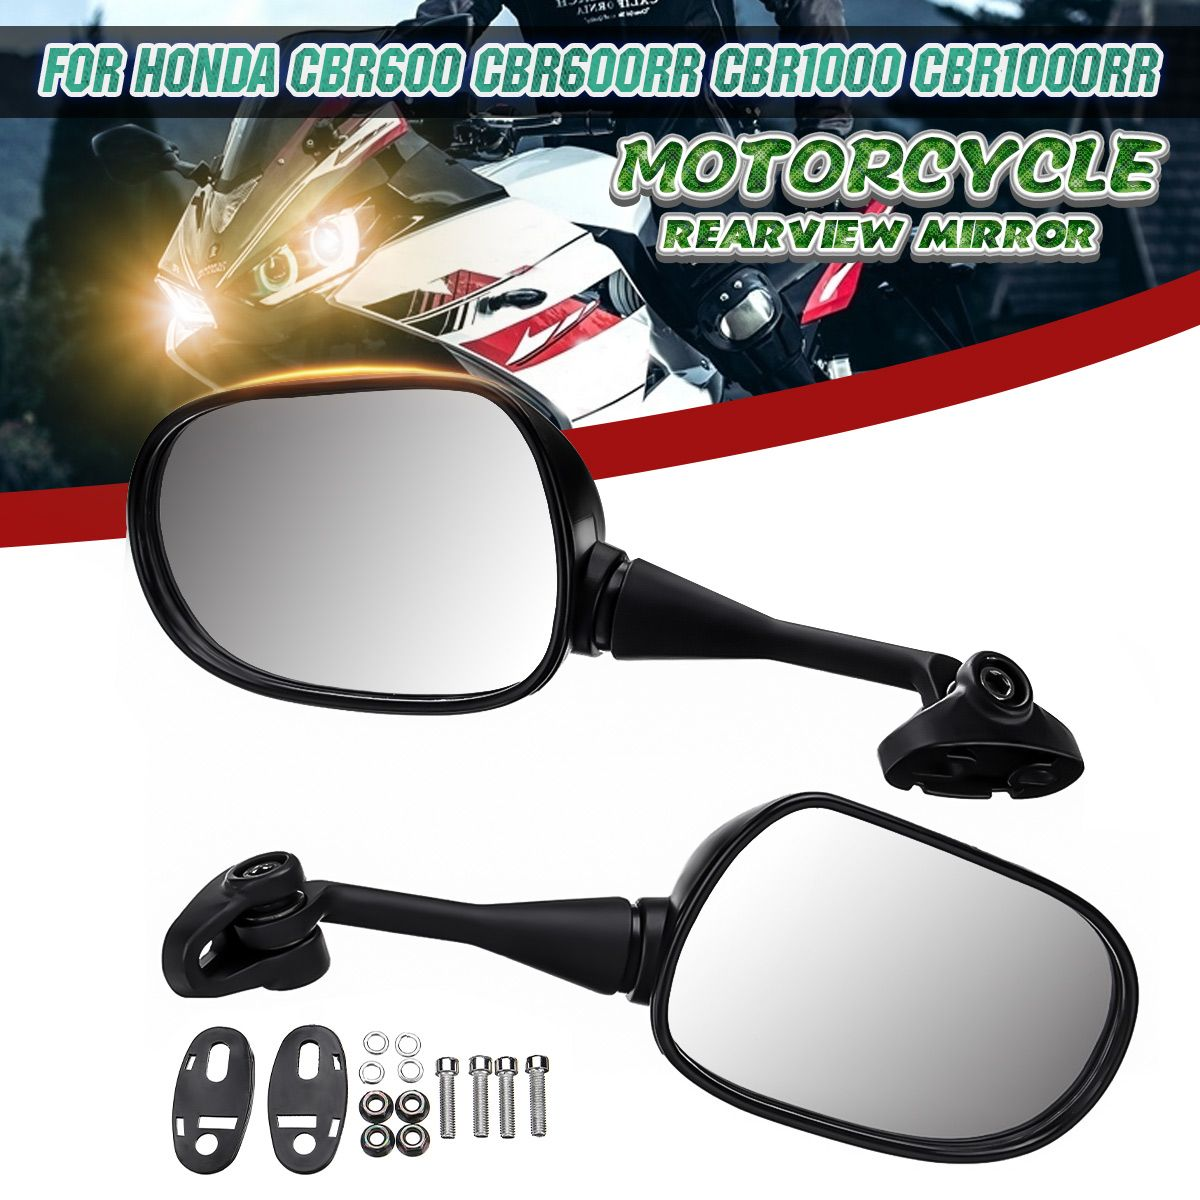 2X 18mm Motorcycle Rearview Rear View Mirrors Glass Back Side Mirror Right Left For Honda CBR600 CBR600RR CBR1000 CBR1000RR